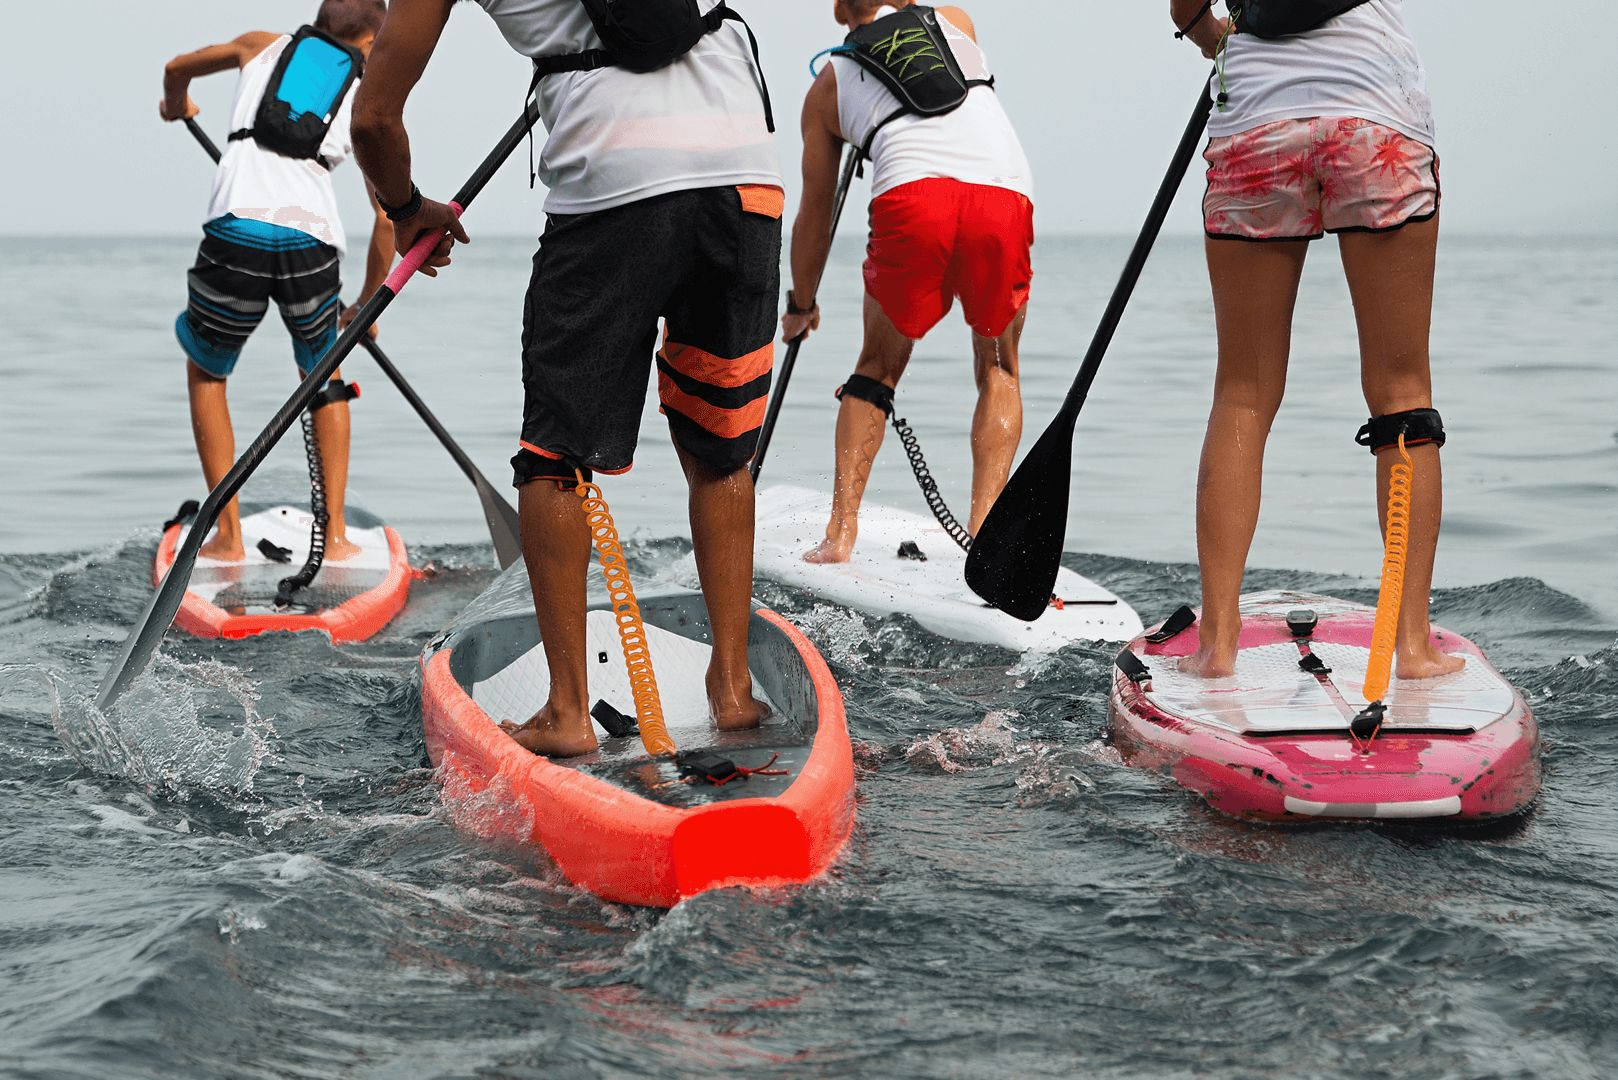 Go Diving Show Paddle Board